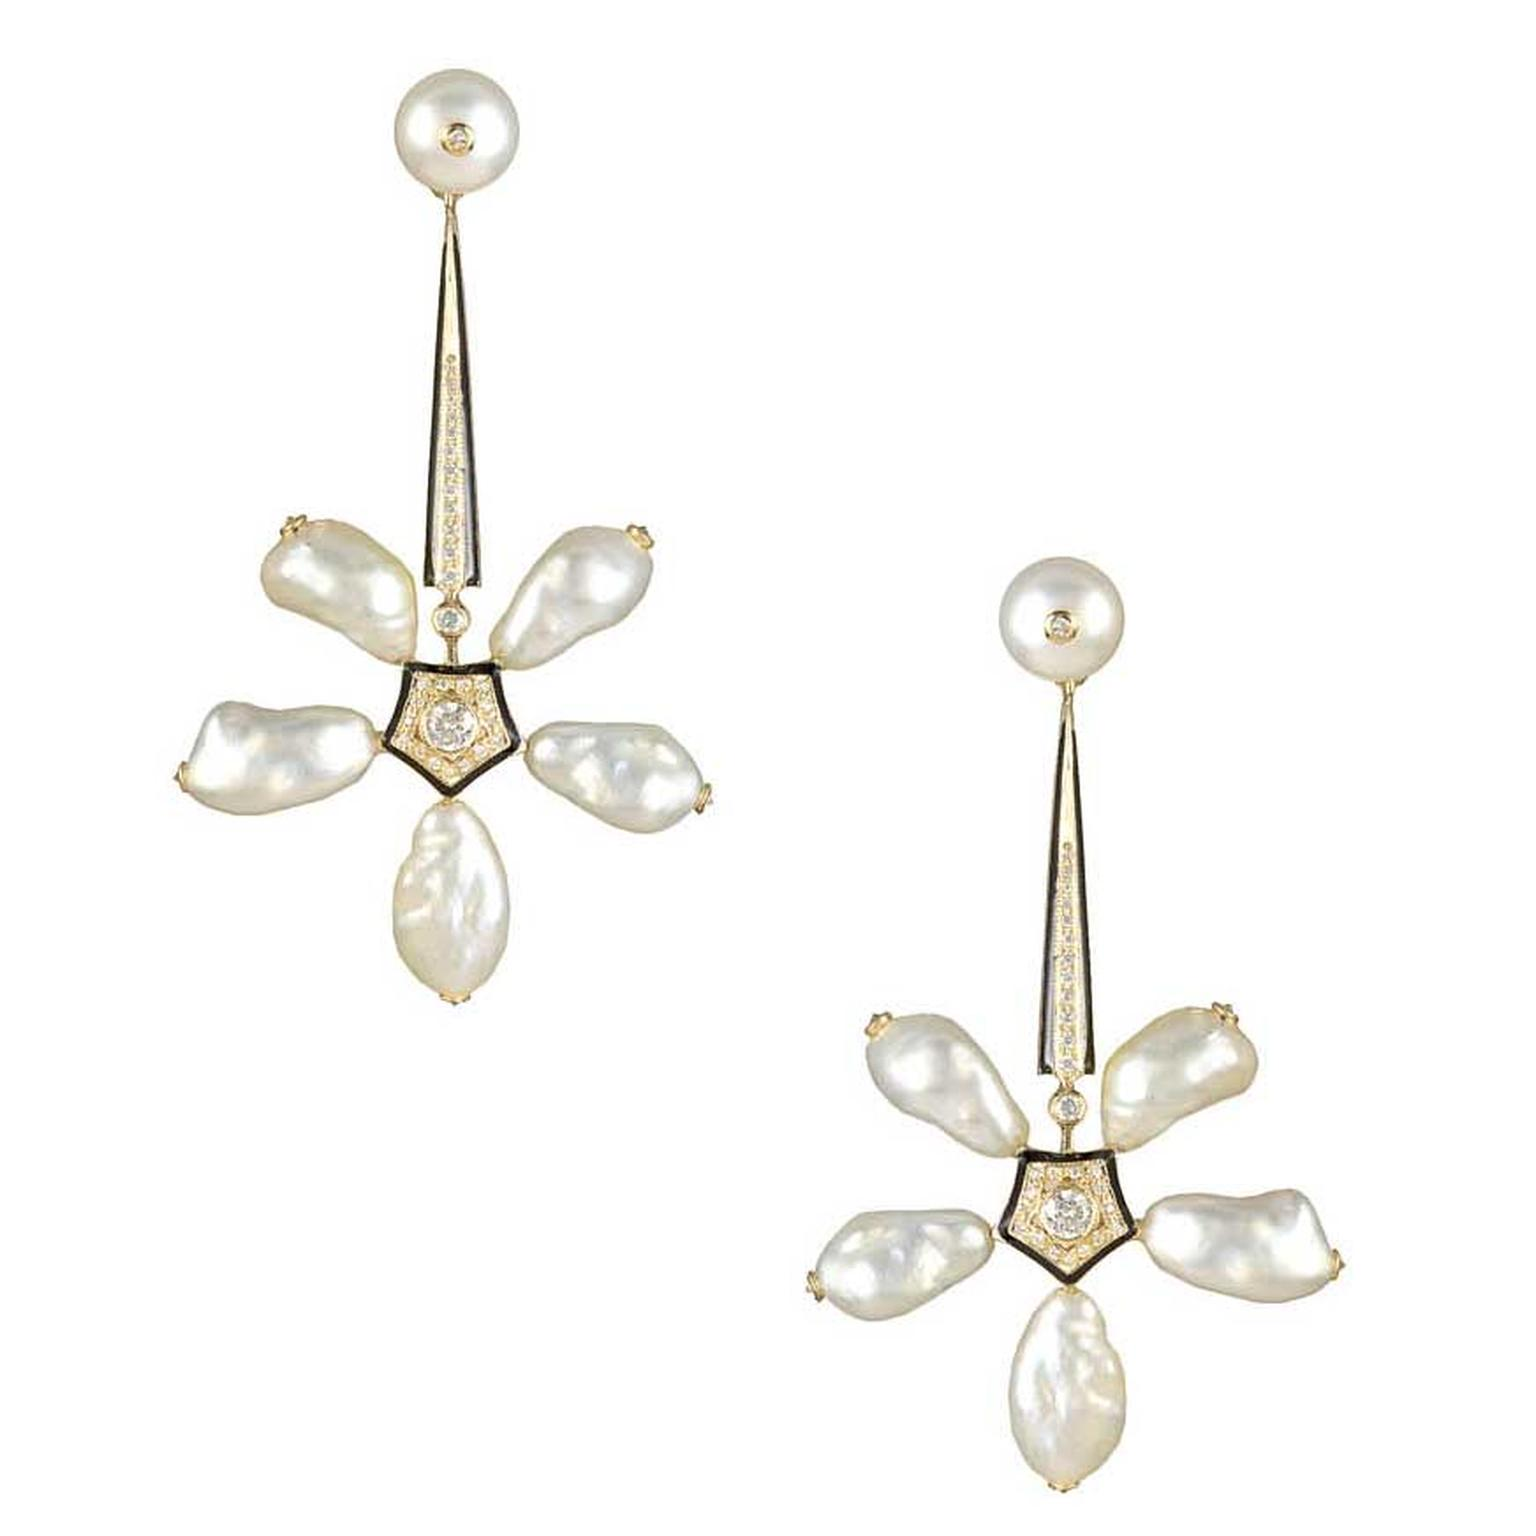 Hanut Singh Narcotic Jasmine natural pearl earrings